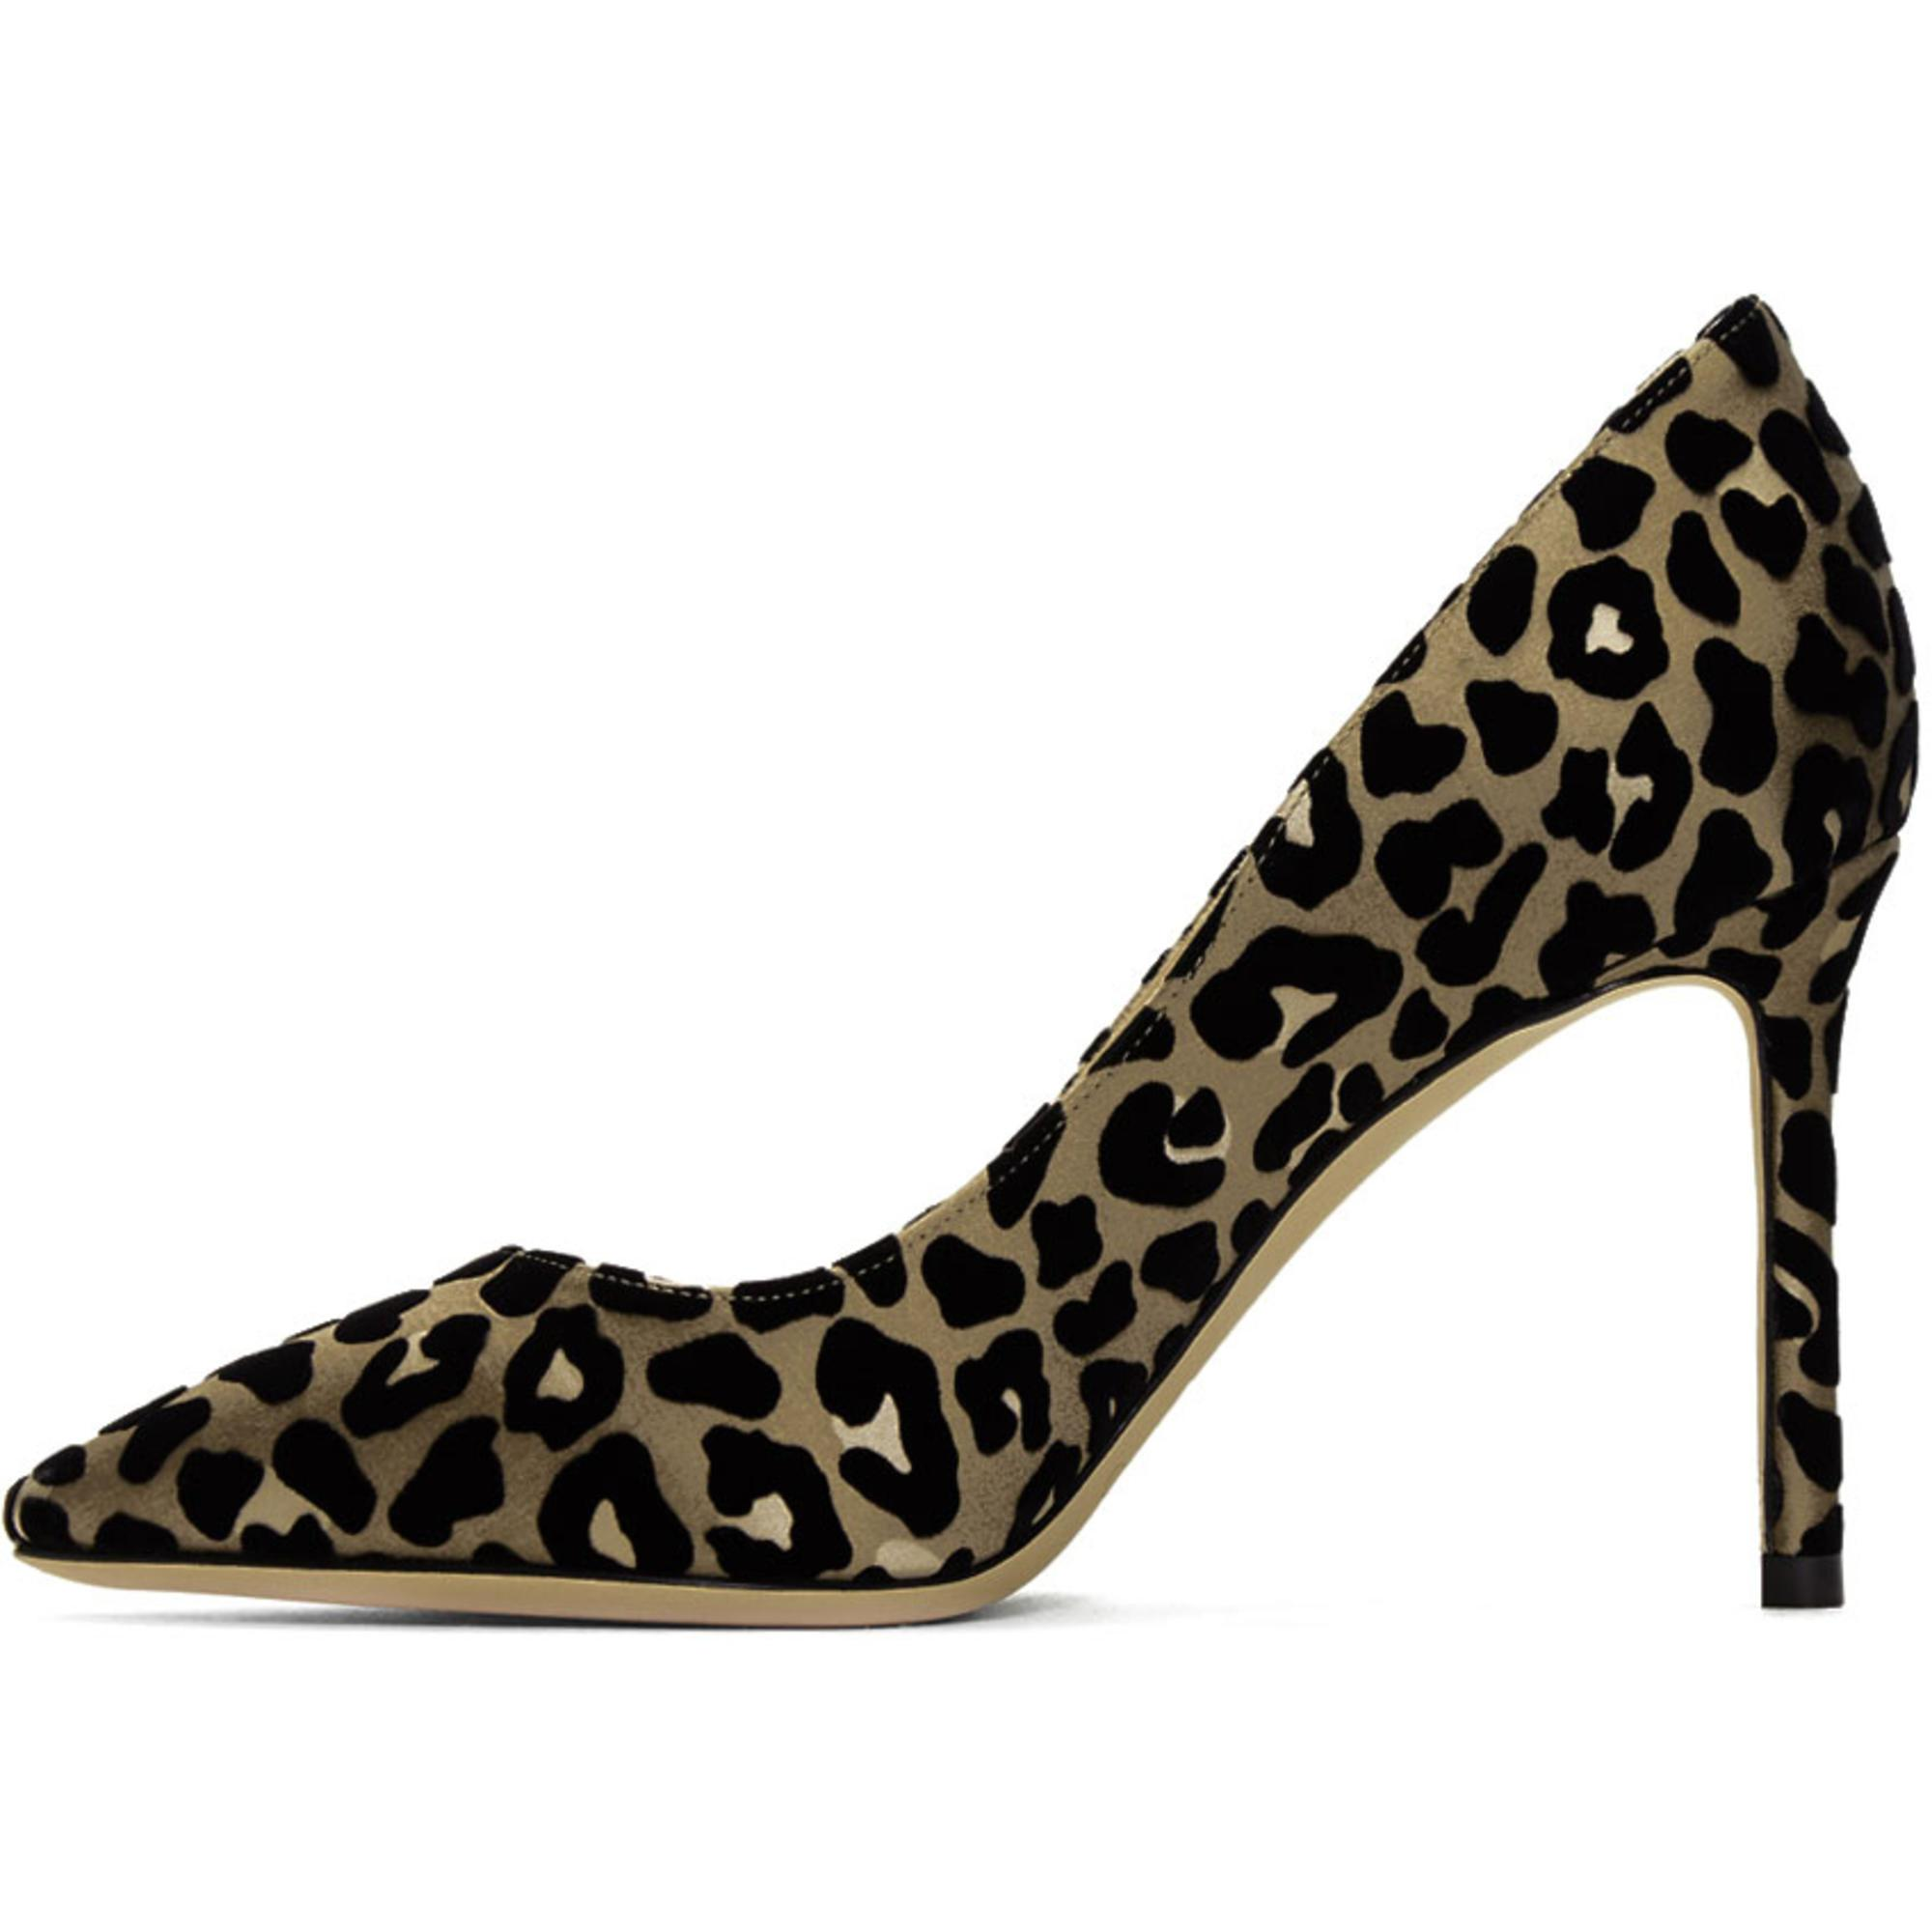 Jimmy choo Tan & Flocked Leopard Romy 85 Heels Sale Inexpensive Browse Cheap Price Discount Best Place Cheap Sale 100% Original Cheap Sale Outlet Locations Z2Mlk40UC2